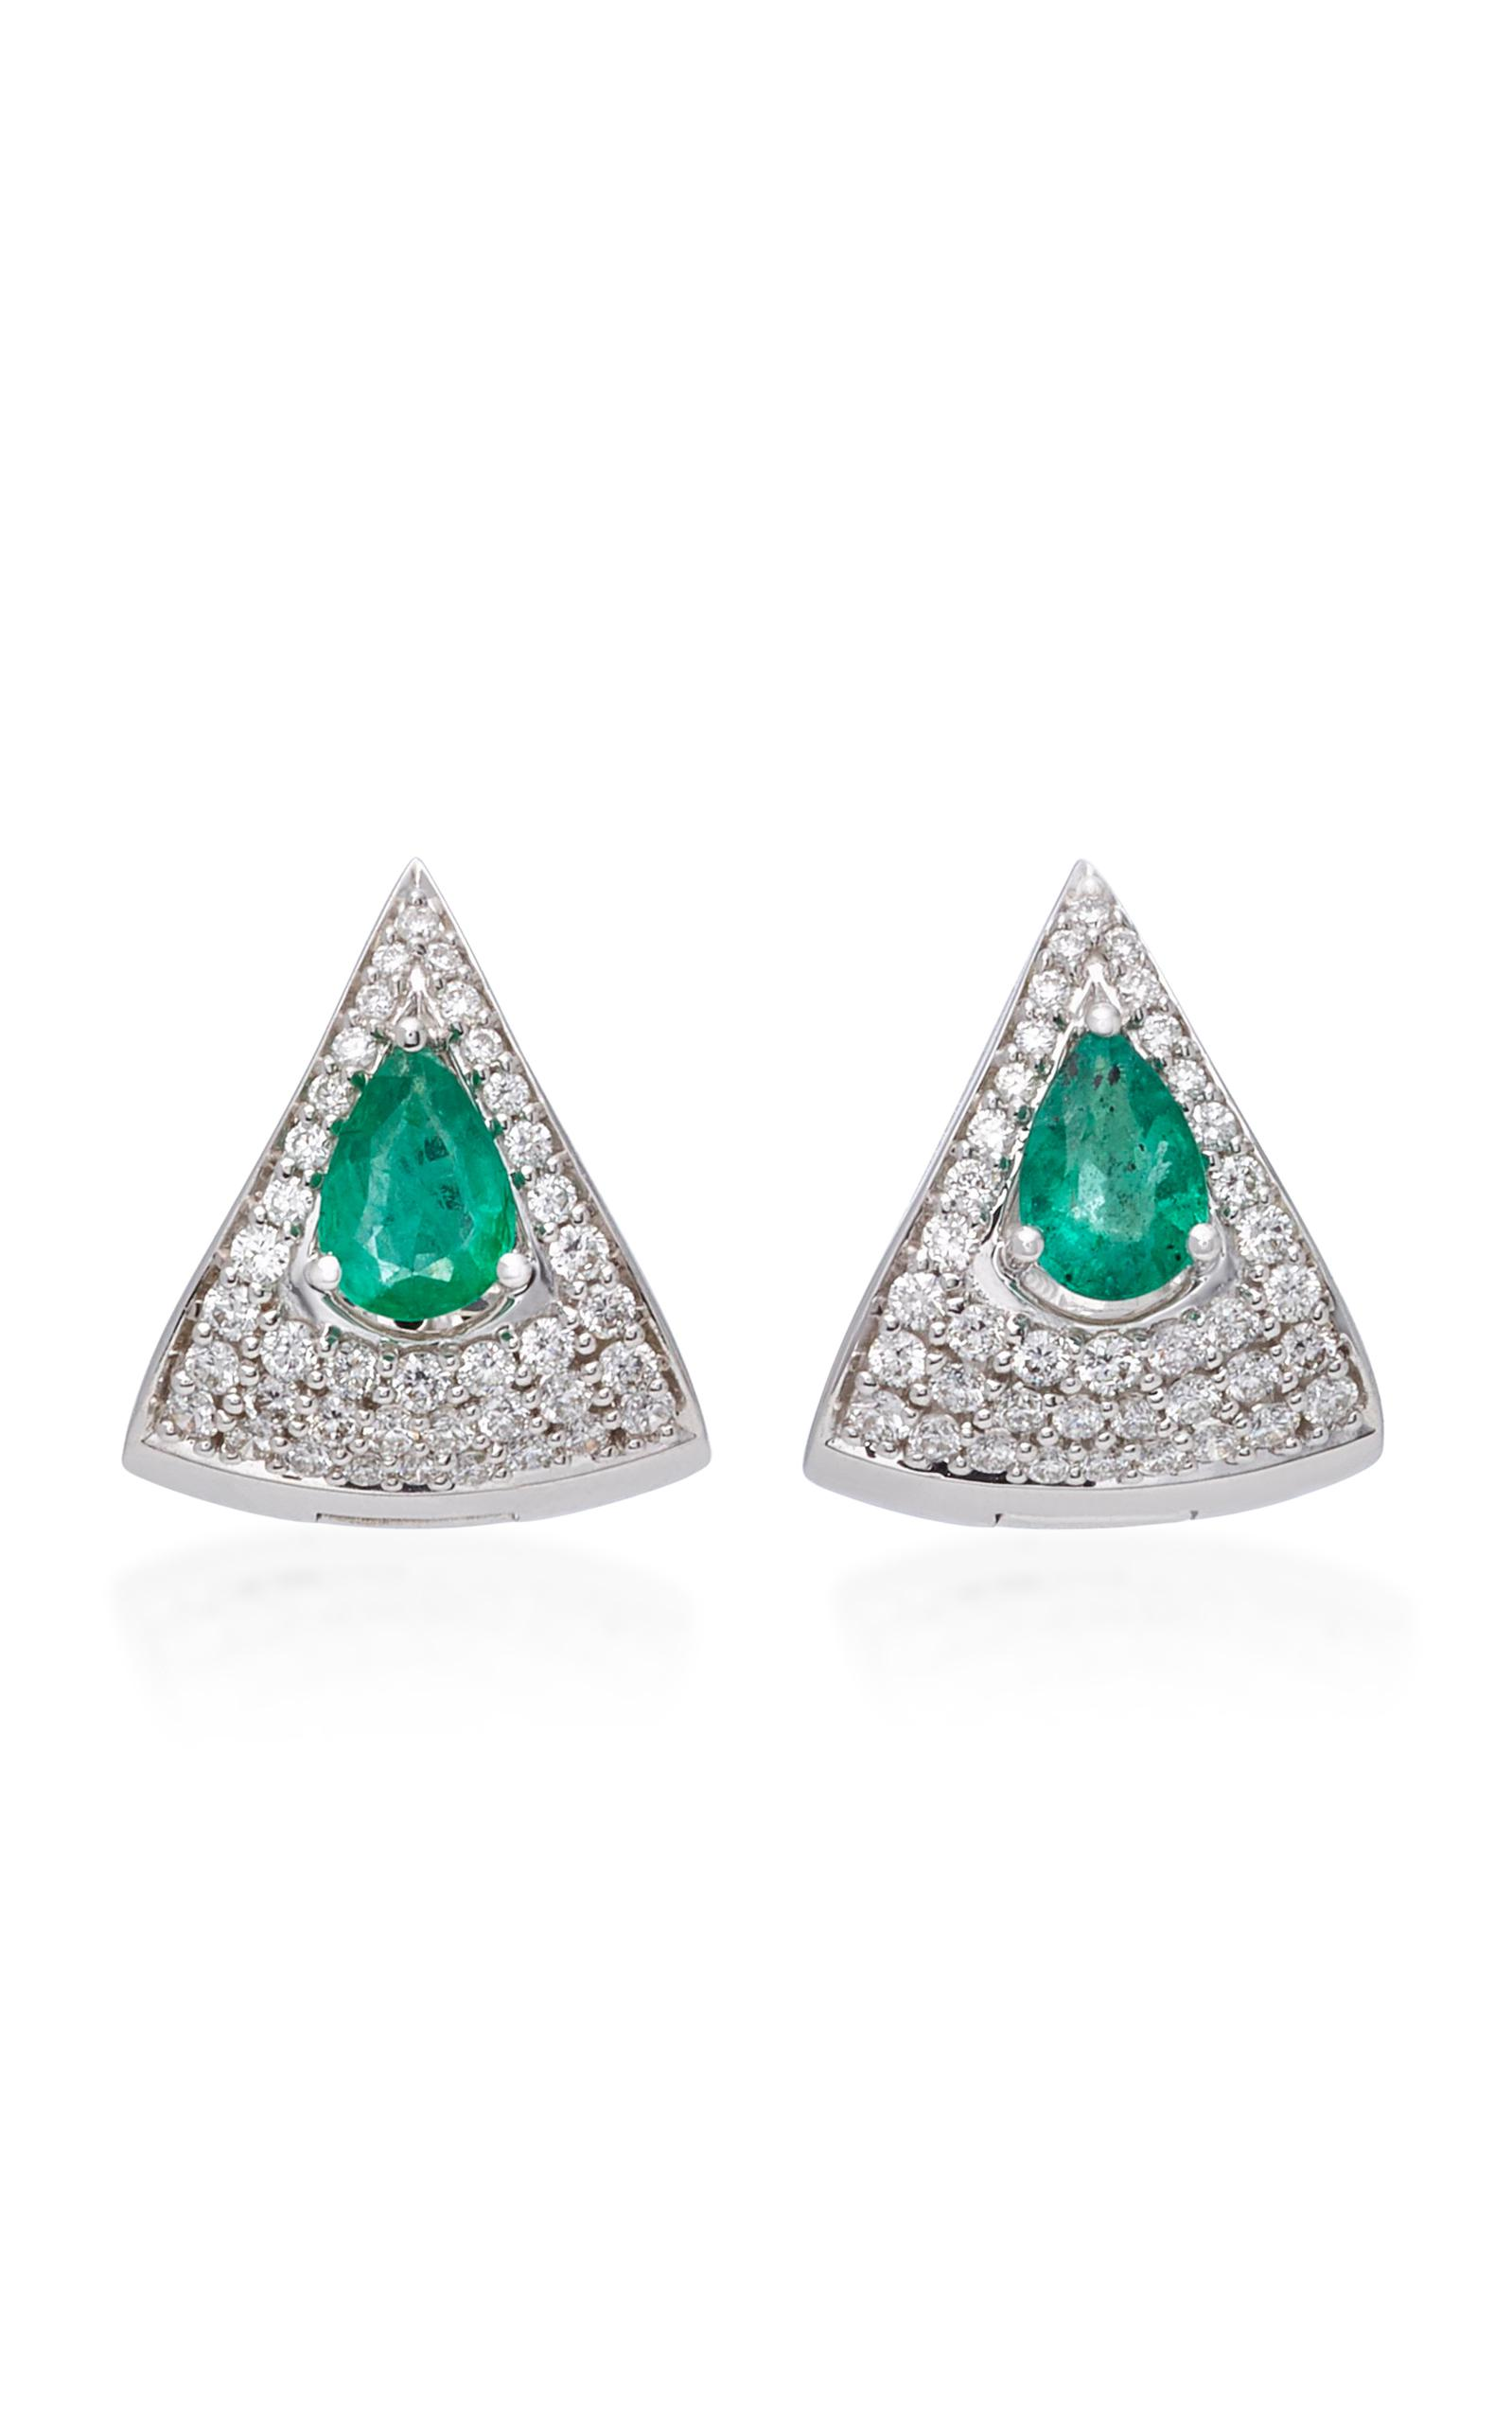 diamonds tw jewellery earrings emerald with in gold white